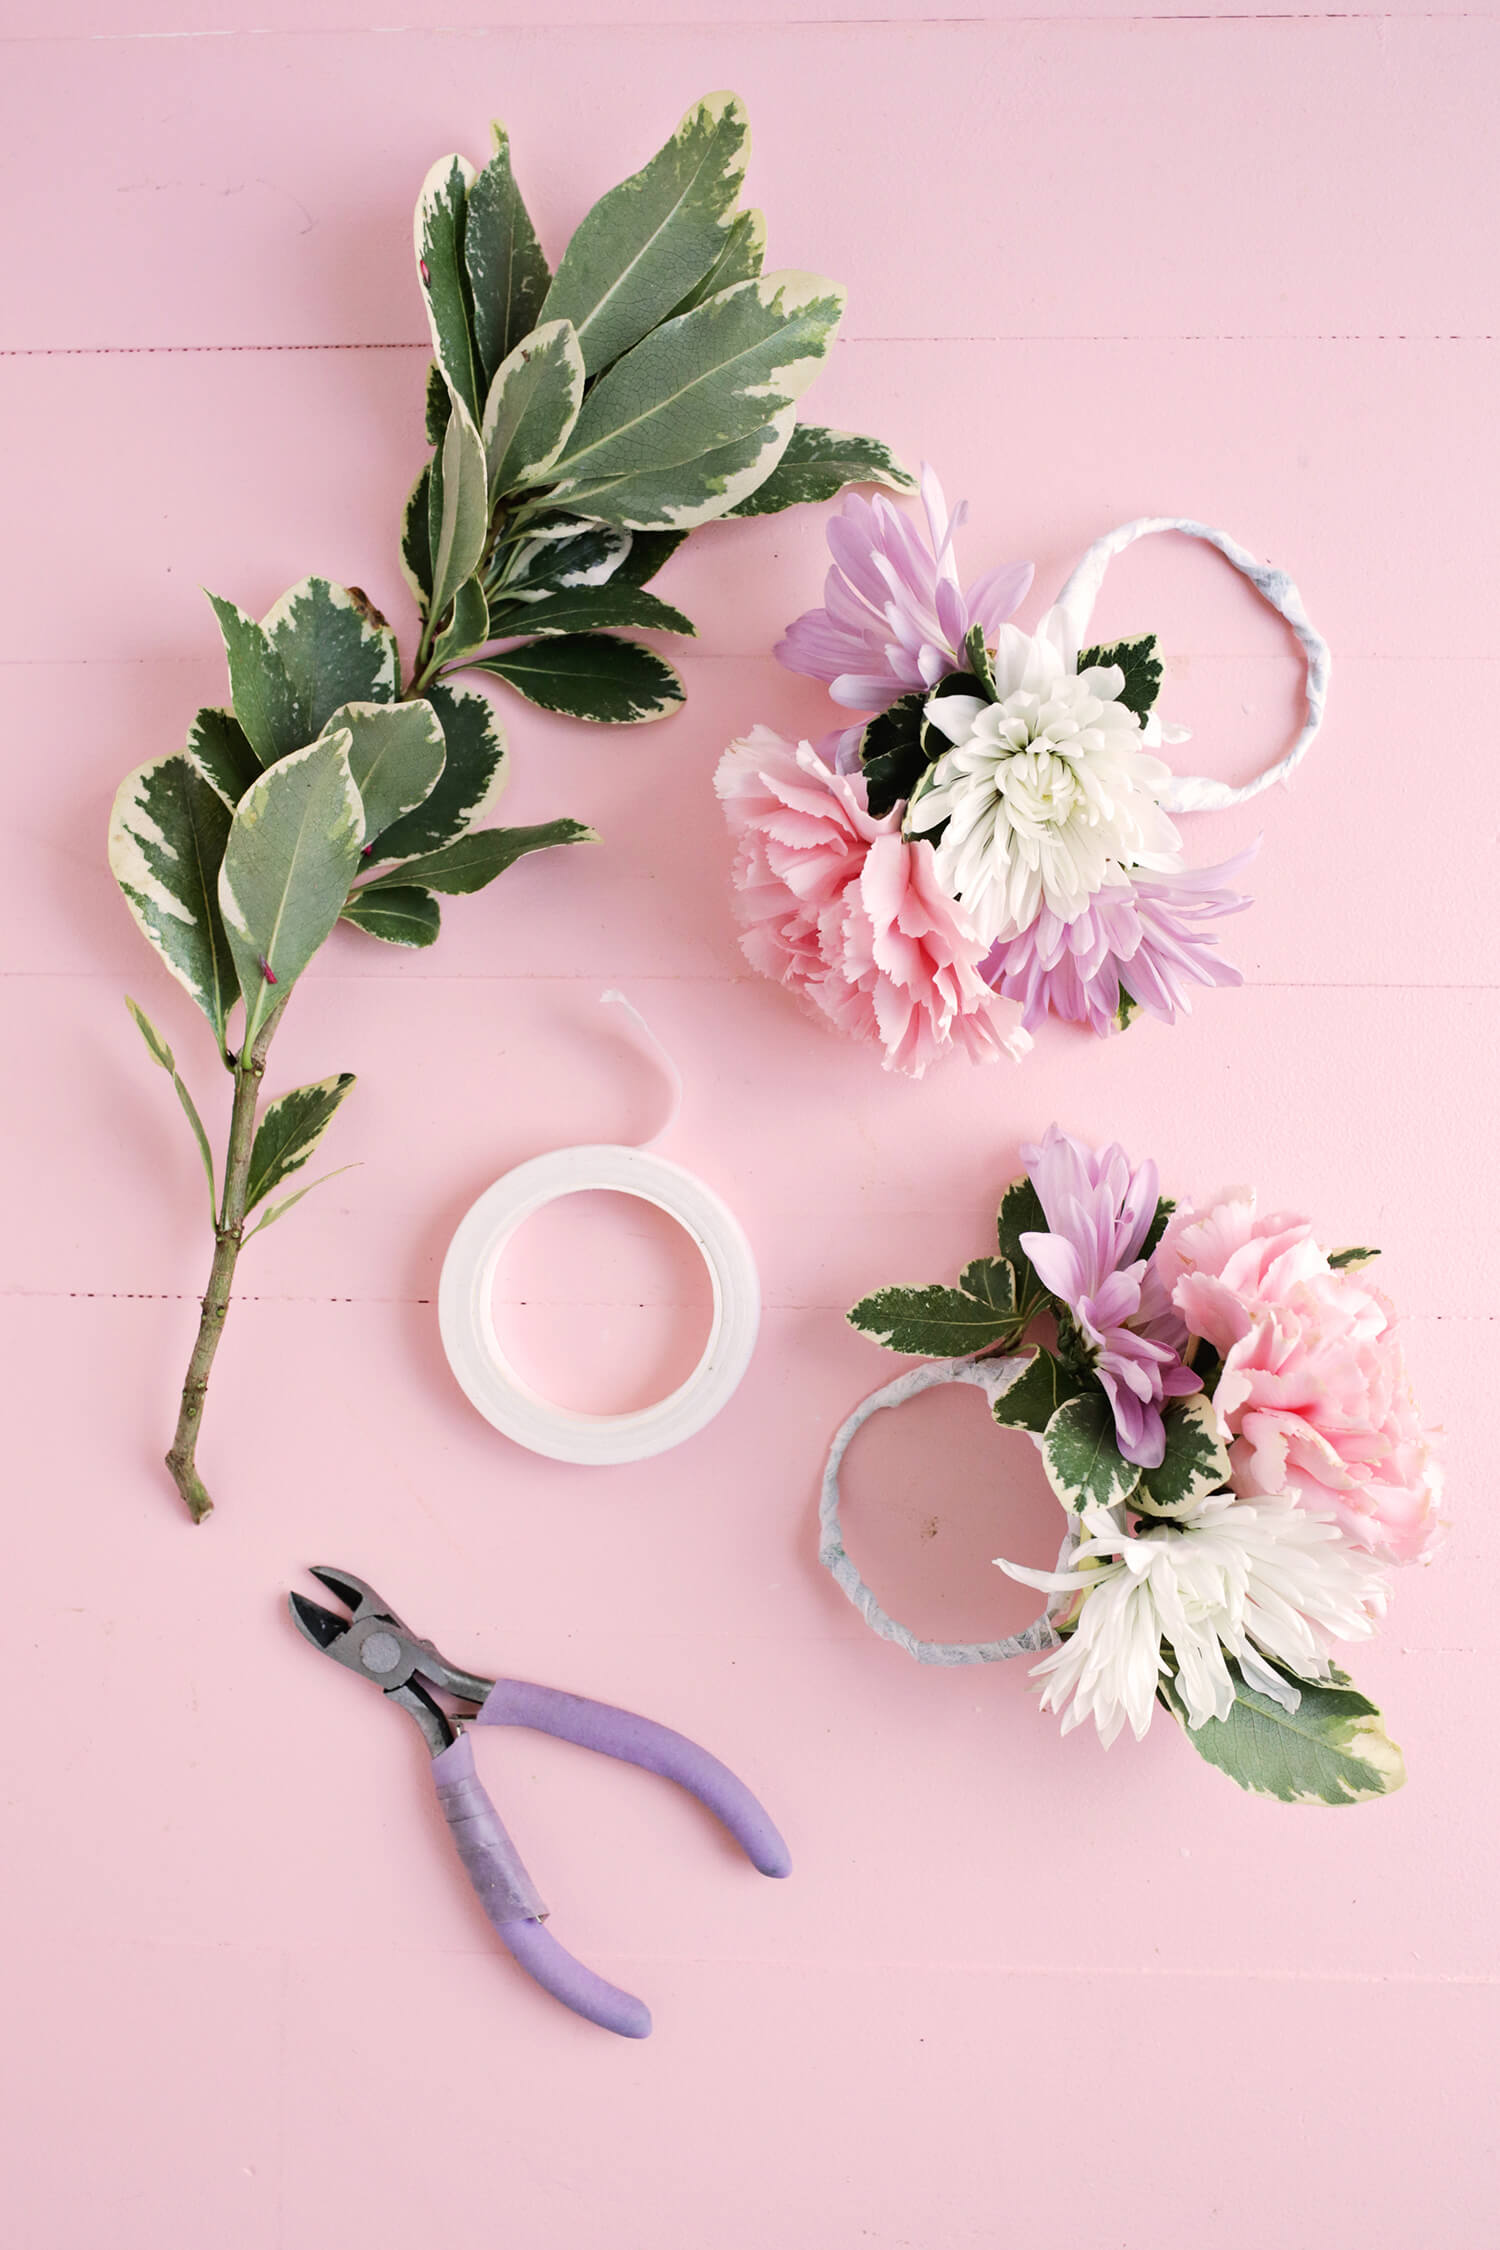 Flower napkin ring diy a beautiful mess diy flower napkin rings click through for tutorial mightylinksfo